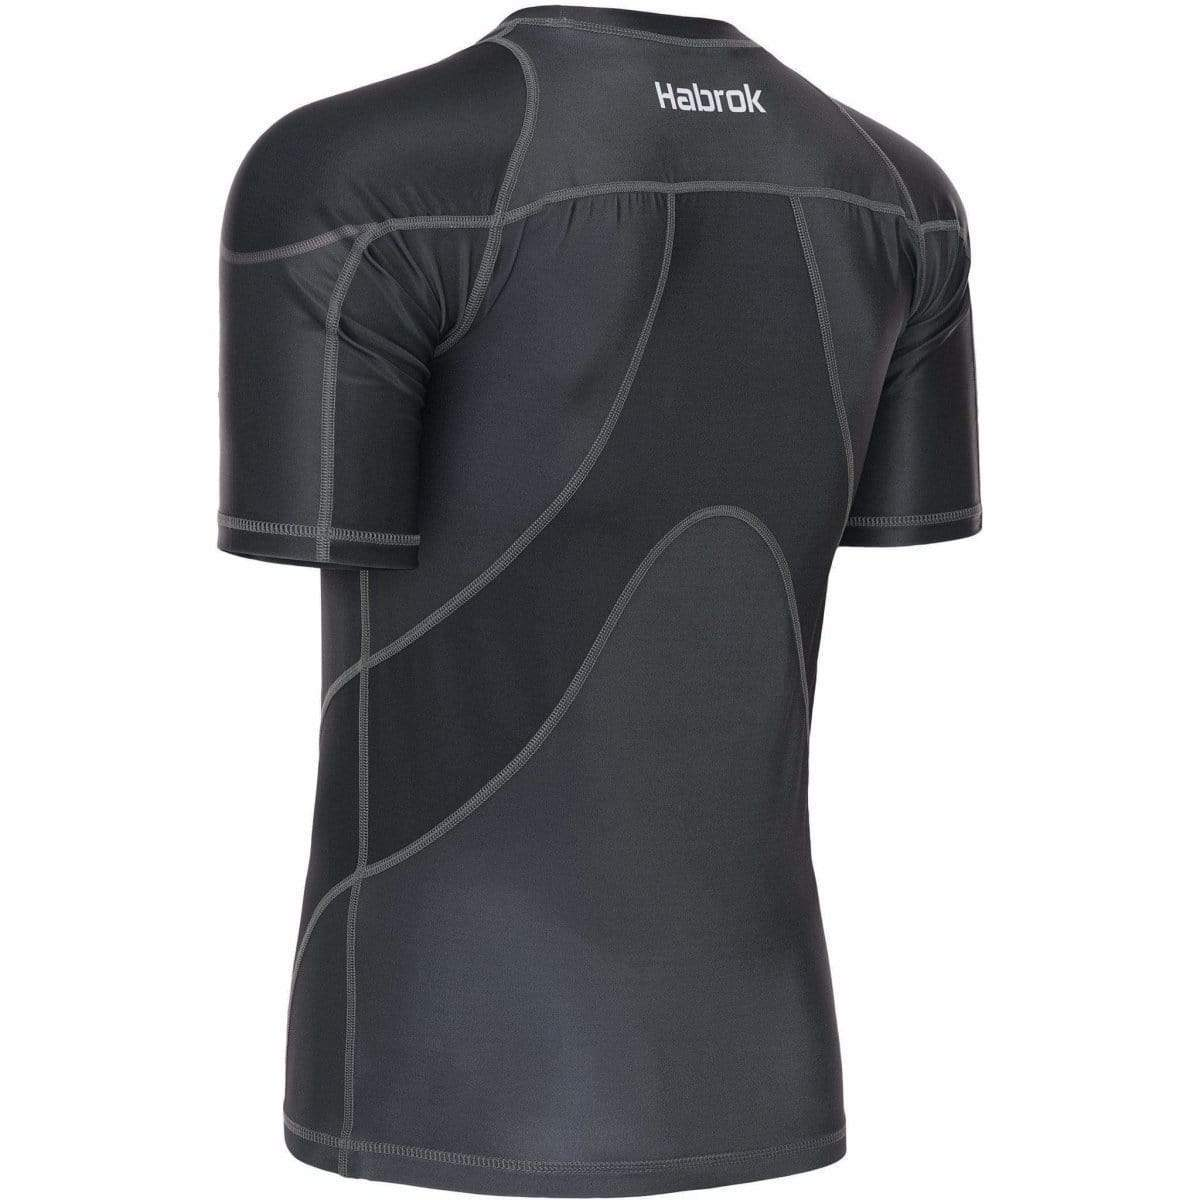 Habrok Rash Guard S / GREY Pugnator 2.0 | Rash Guard | Half Sleeve | Men | Grey Pugnator | BJJ Rash Guard | Habrok